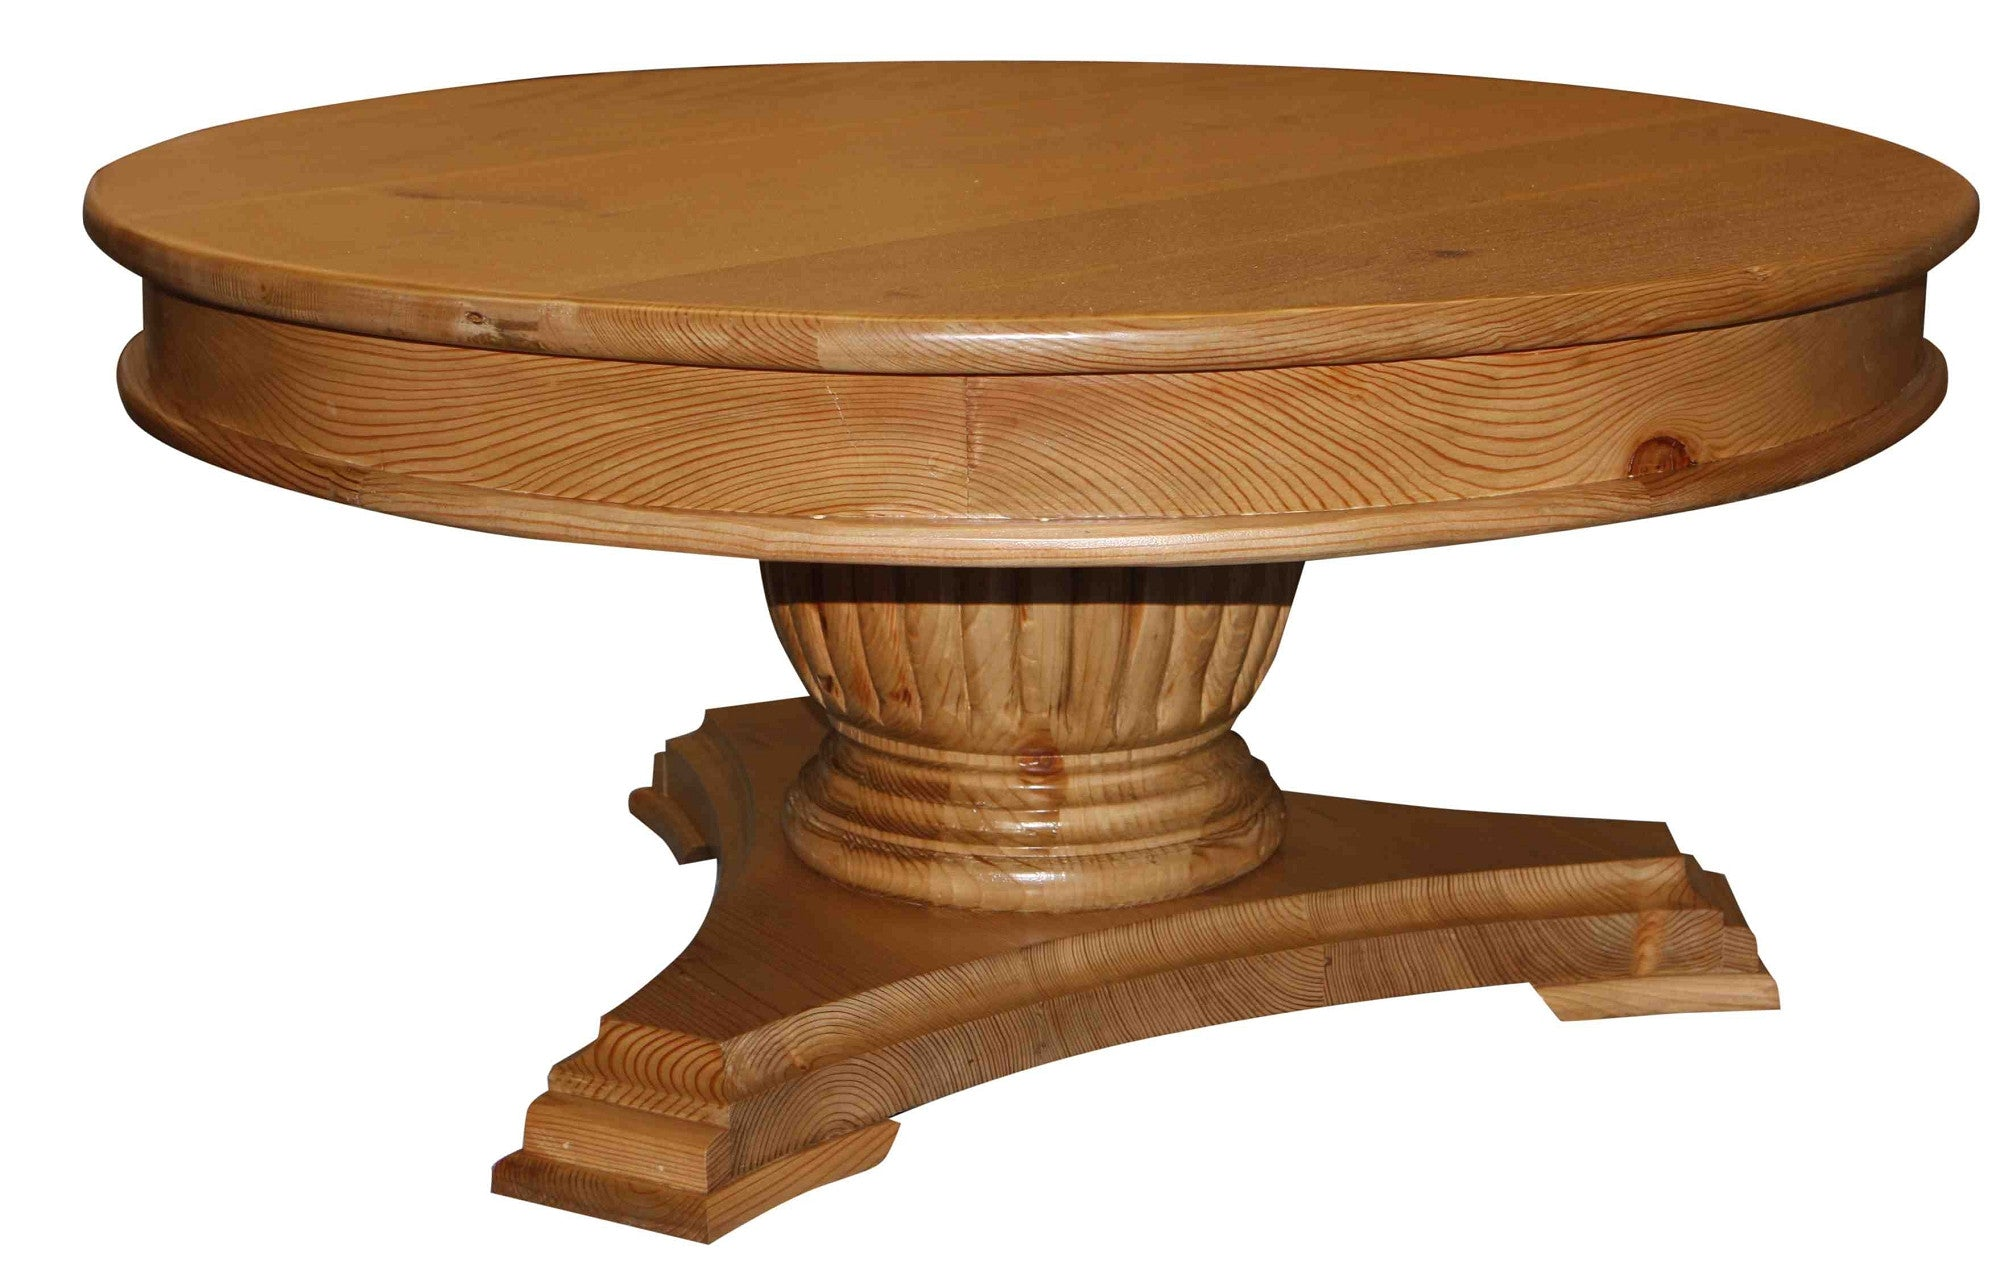 Fluted Pedestal Base Round Coffee Table – Mortise & Tenon